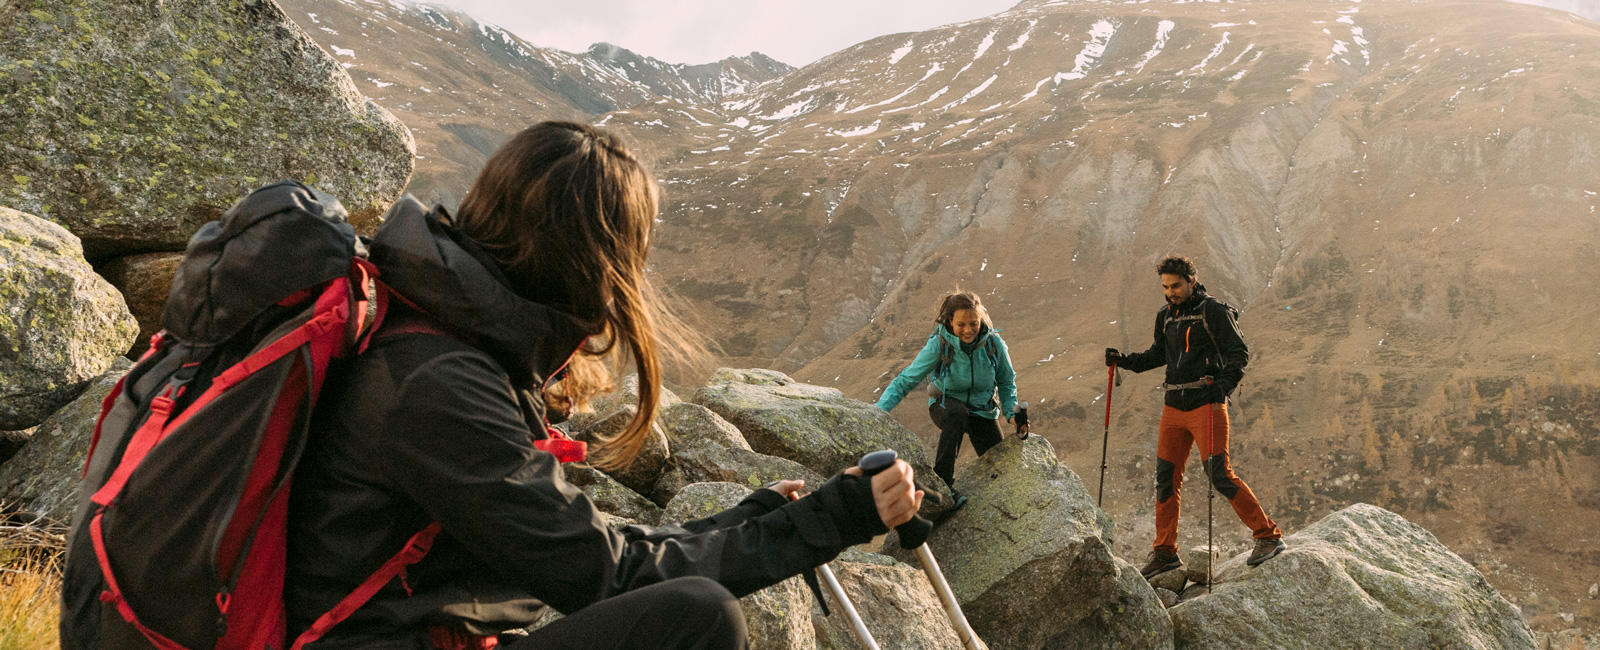 The 10 commandments for hiking safely